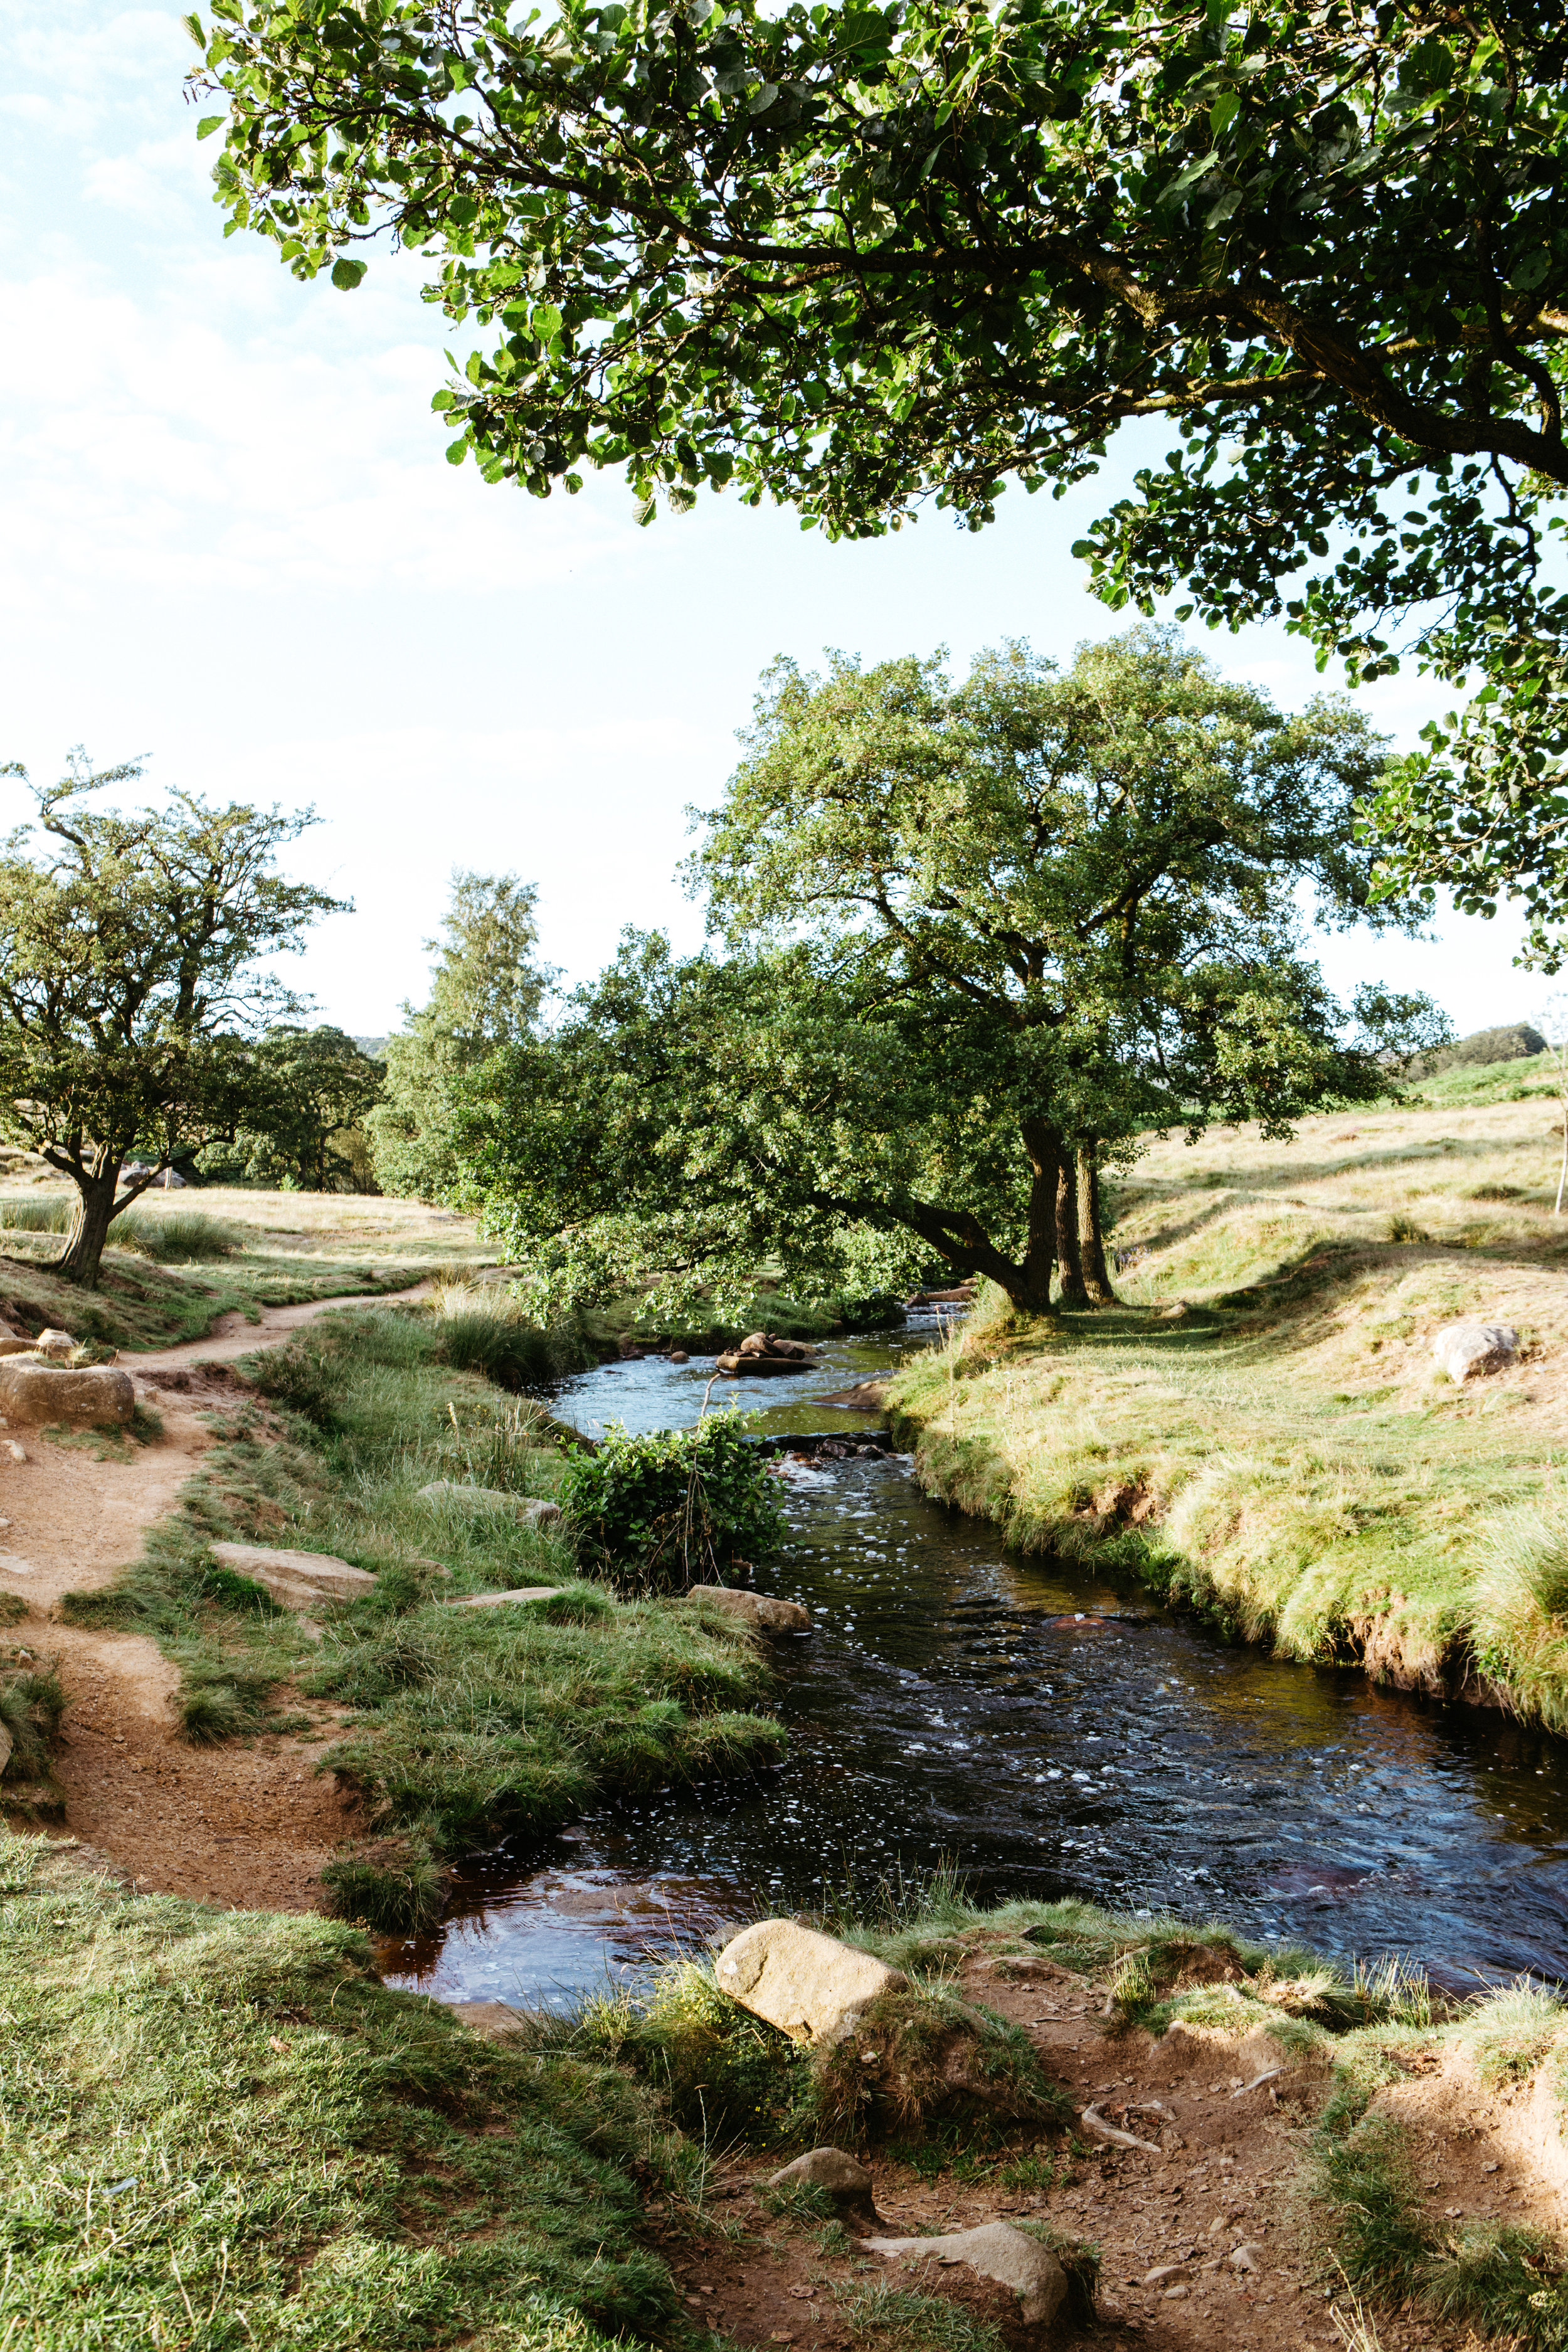 Following Burbage Brook into Padley Gorge